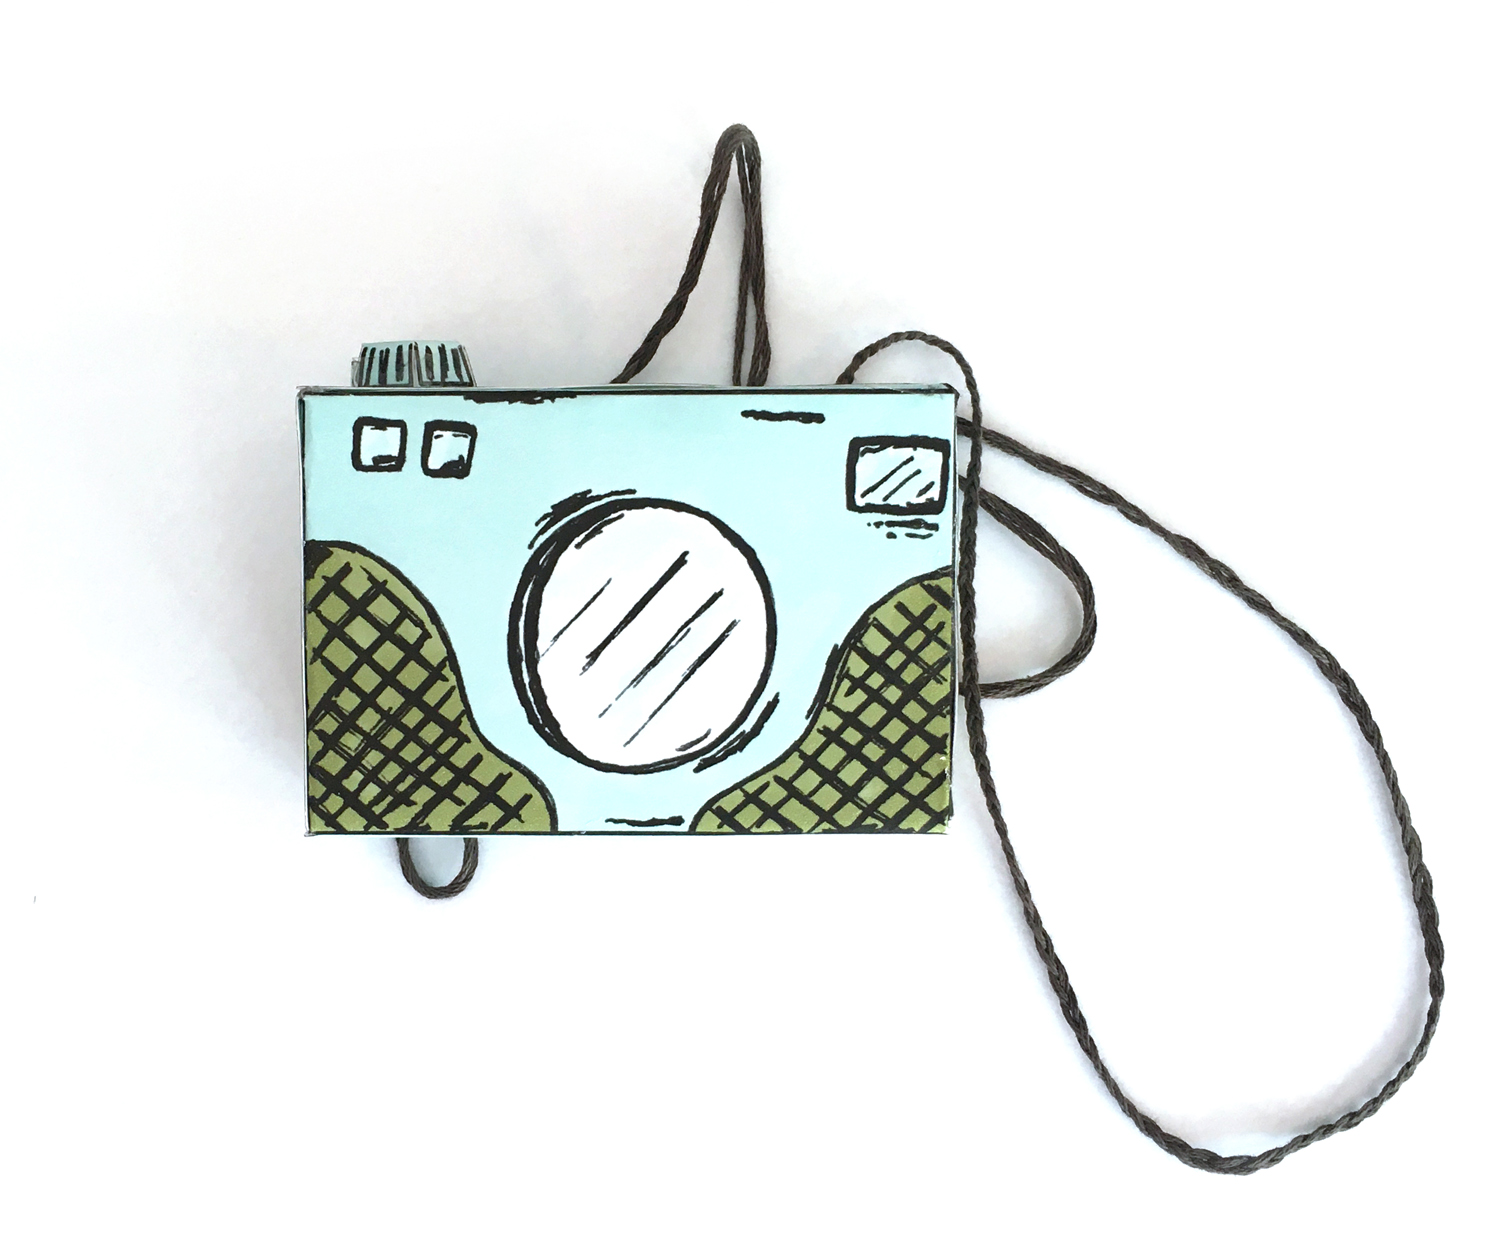 free printable paper camera template, paper crafts, kids craft ideas, retro camera, book character costume, diy costume ideas